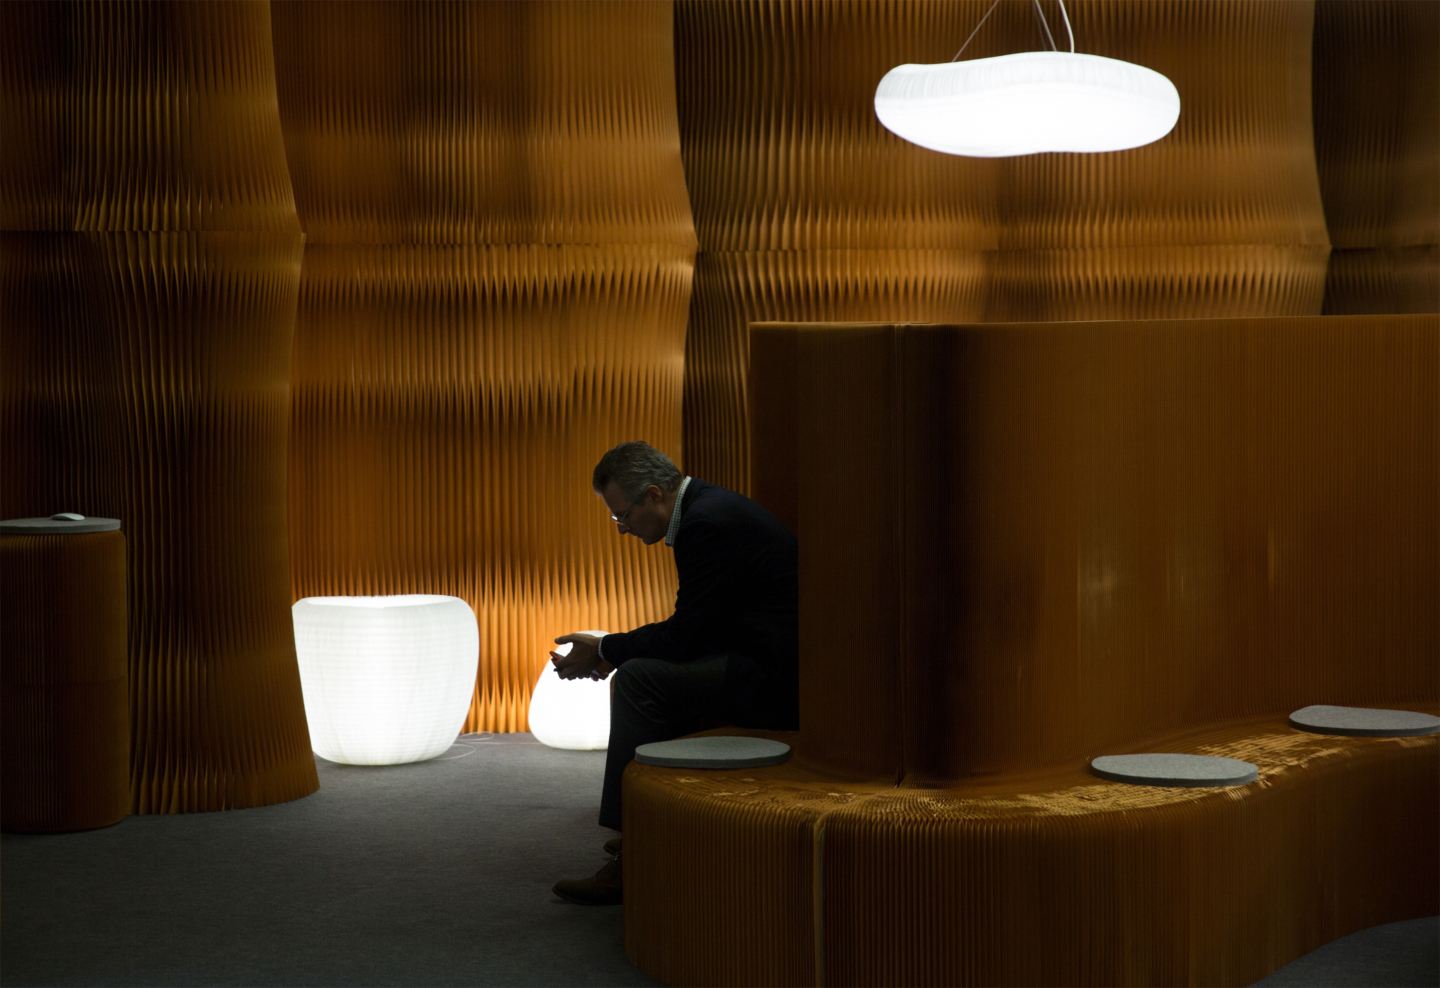 urchin softlight and accordion wall partition by molo - orgatec exhibit 2018